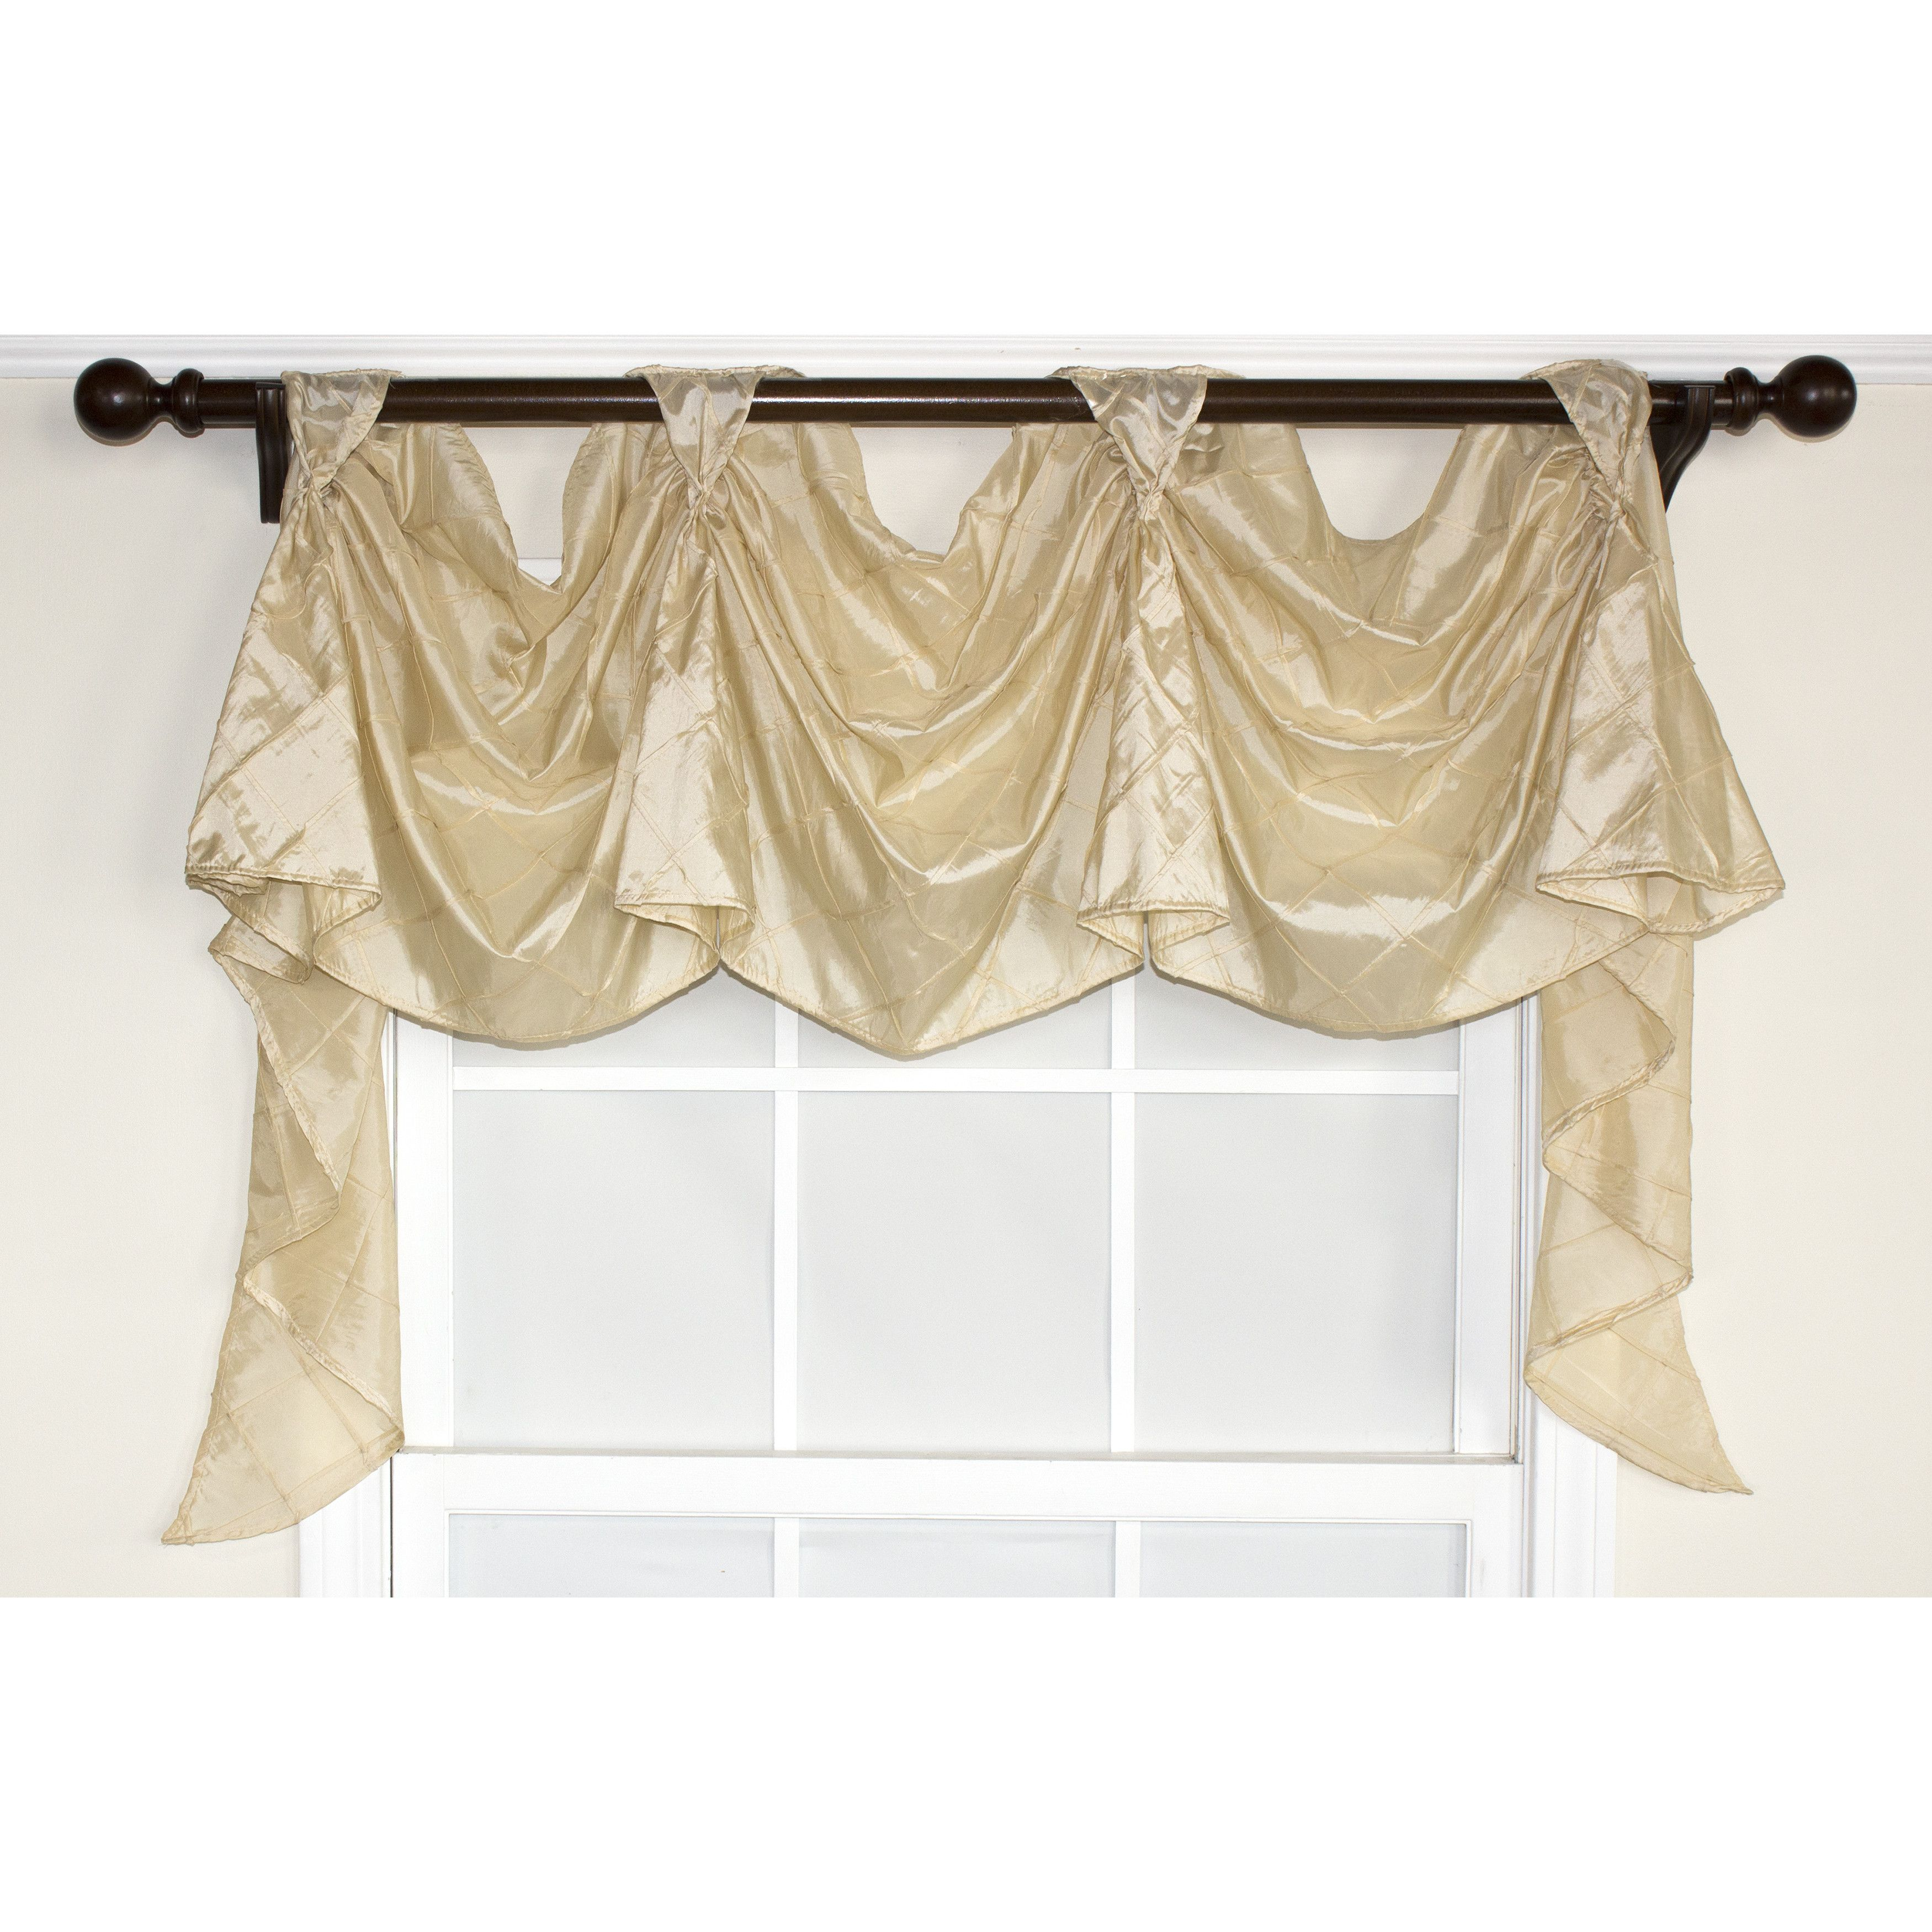 RLF Home Tucker Victory Swag Curtain Valance Reviews